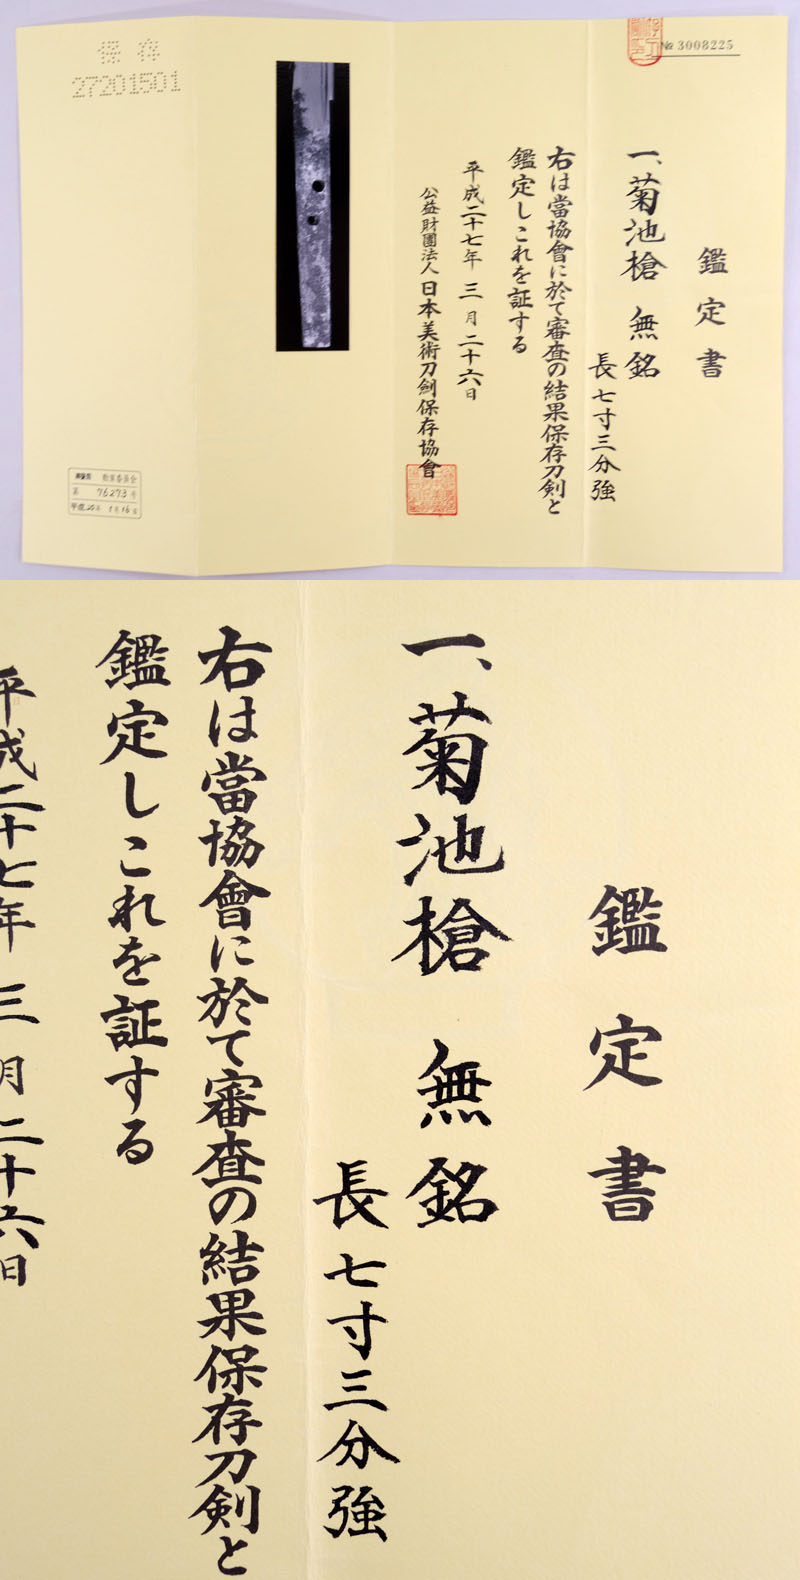 菊池槍 無銘 Picture of Certificate